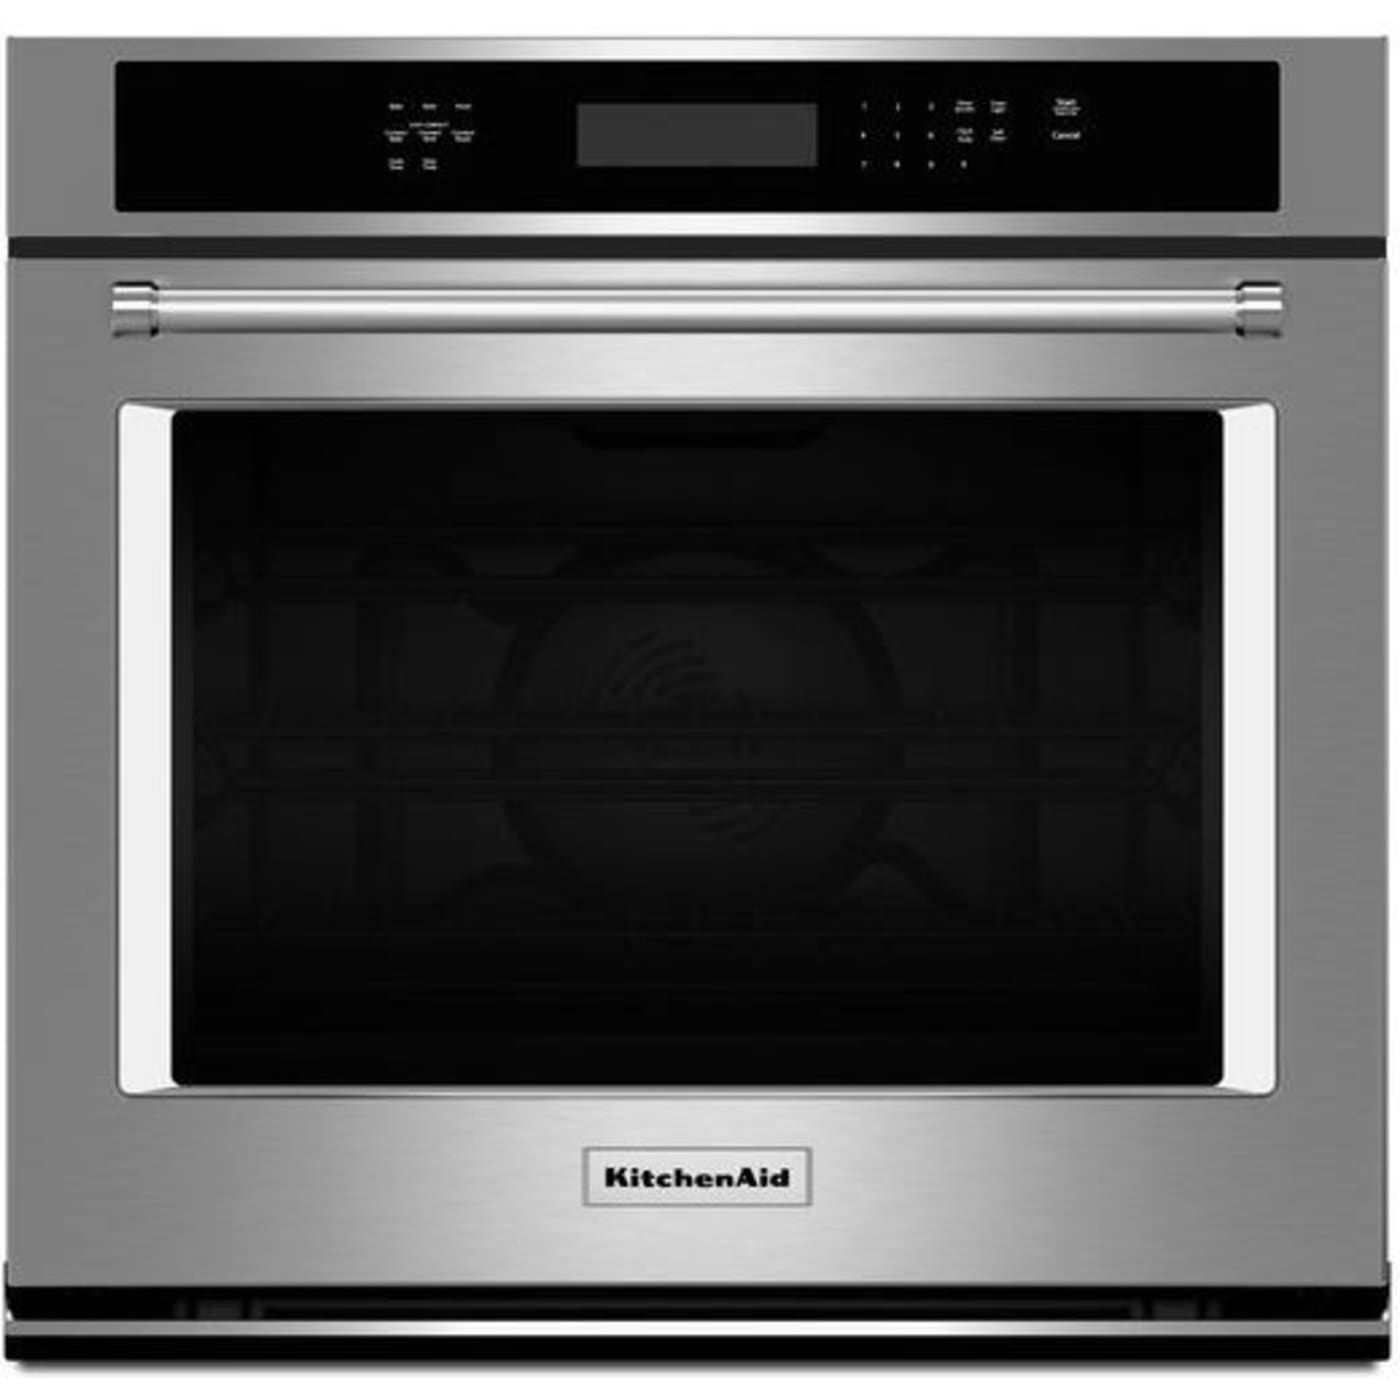 Kose500ess by kitchenaid electric wall ovens goedekers